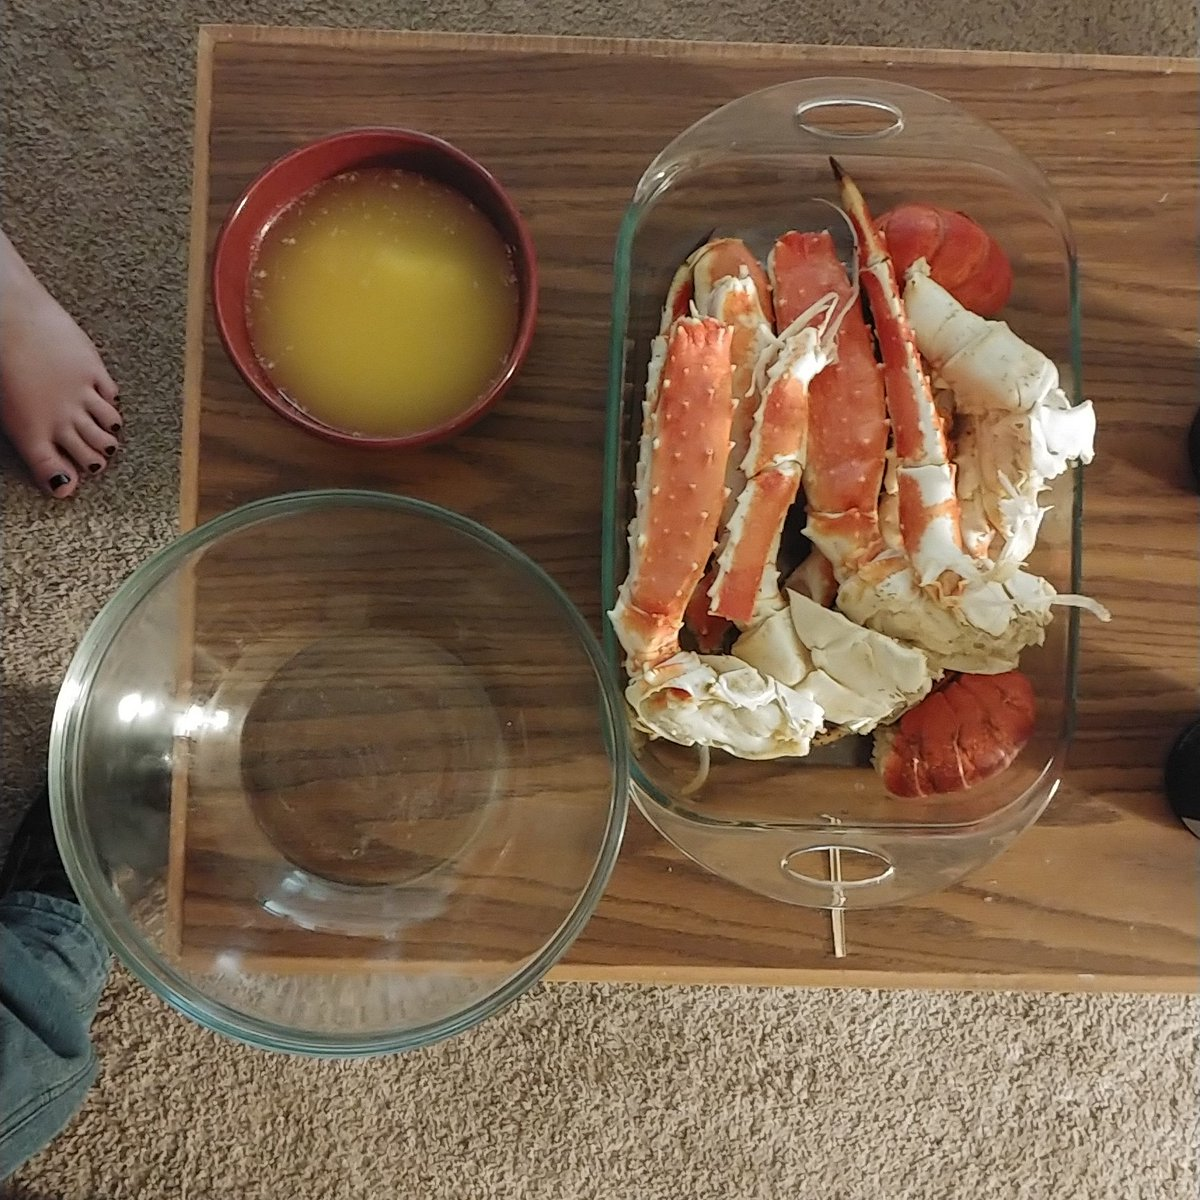 This was valentines day dinner. #wellness #healthy #motivation #fitnessmotivation #healthyfood #healthyliving #food #instagood #selfcare #goals #mentalhealth #strength #healthylife #happiness #healthyeating #selflove #family #velentinesday #lobster #crab #lobstertails #crablegs